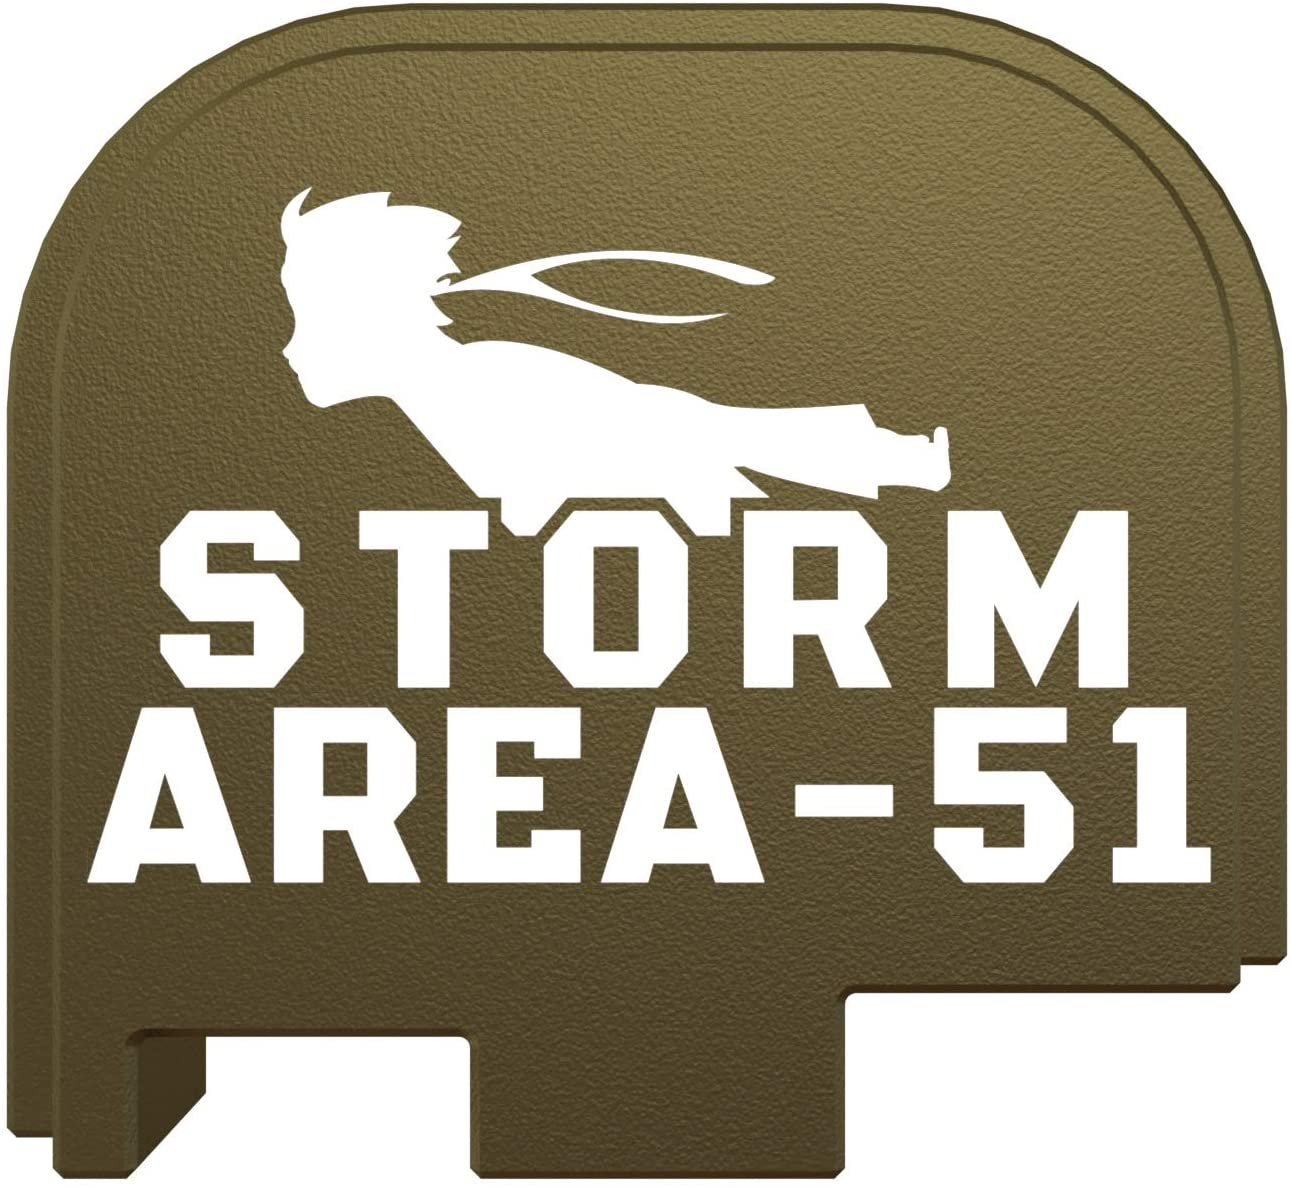 Rowe Tactical Glock Rear Slide Cover Plate - Olive Drab Storm Area-51 - for Glock 43-43x-48